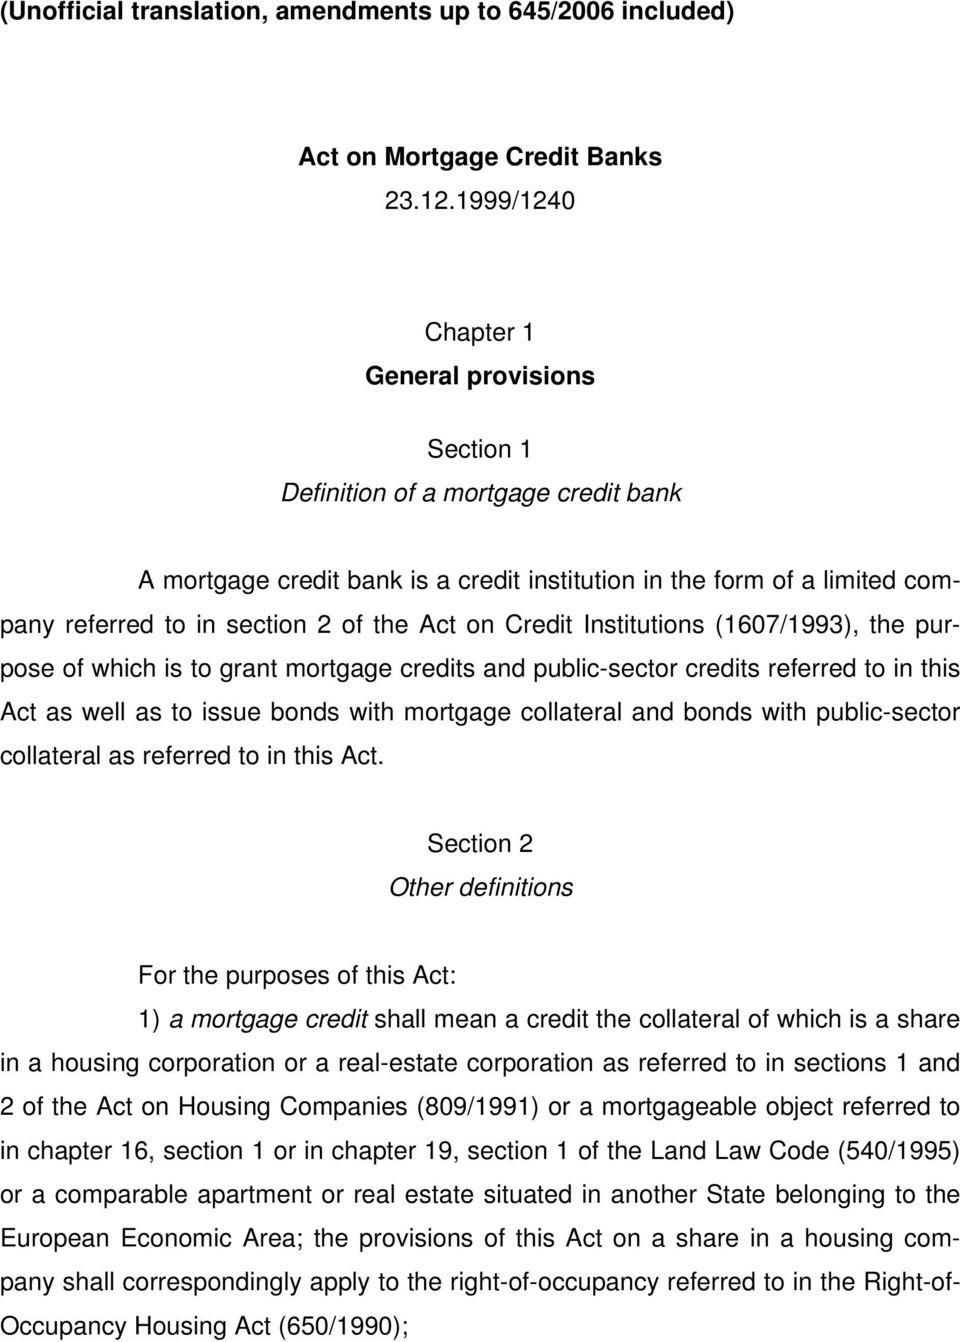 Act on Credit Institutions (1607/1993), the purpose of which is to grant mortgage credits and public-sector credits referred to in this Act as well as to issue bonds with mortgage collateral and